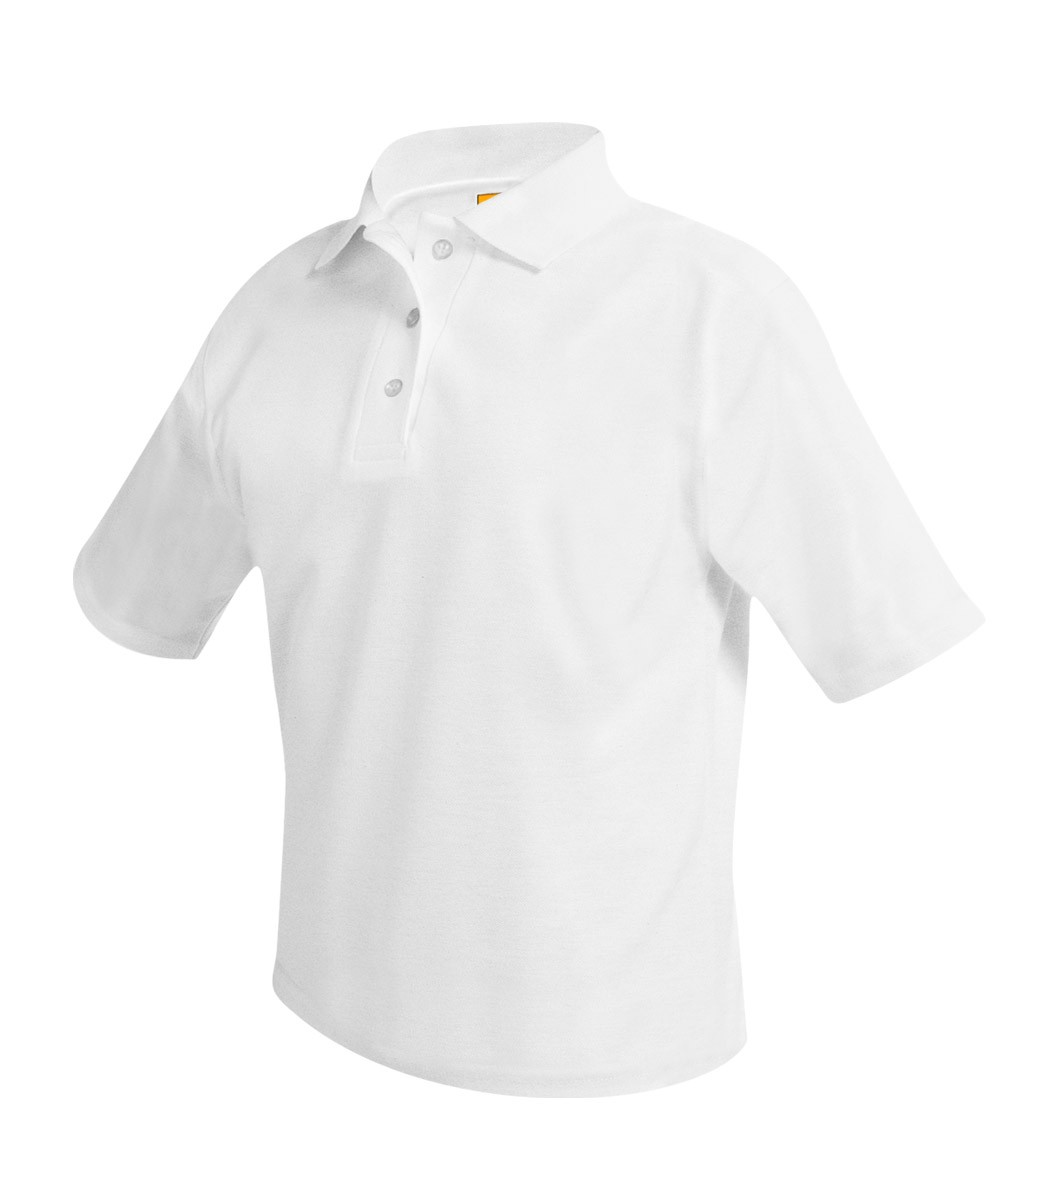 RES White S/S Polo w/ Logo